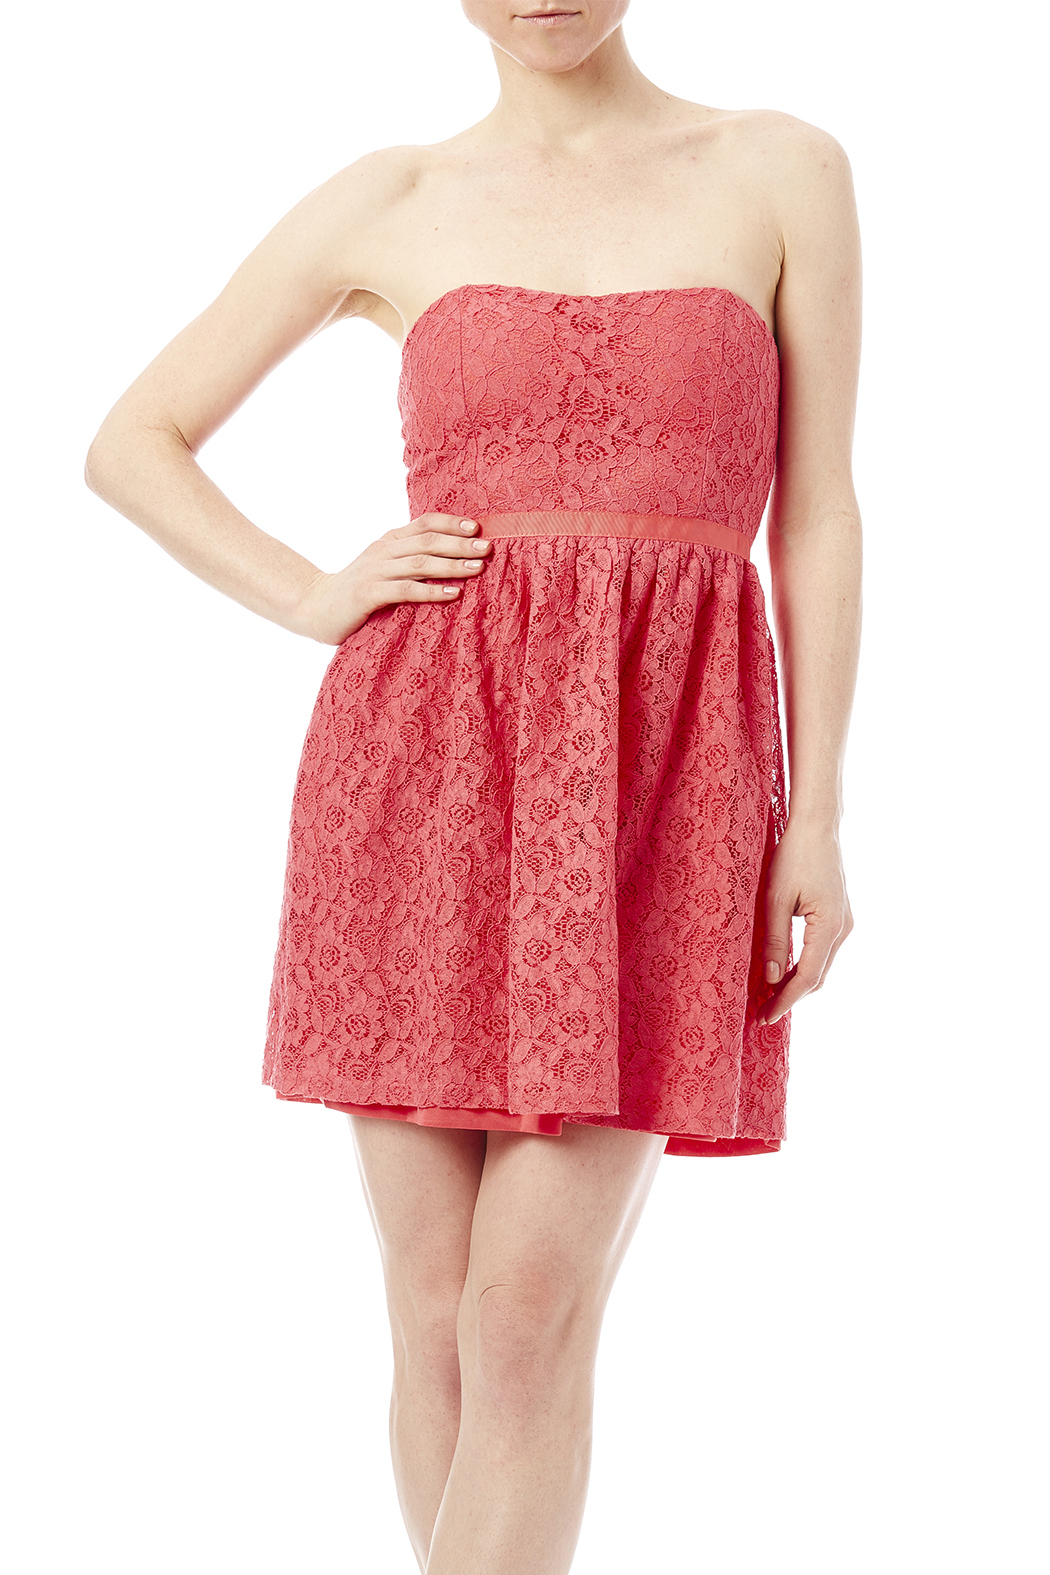 newbury kustom coral lace strapless dress from